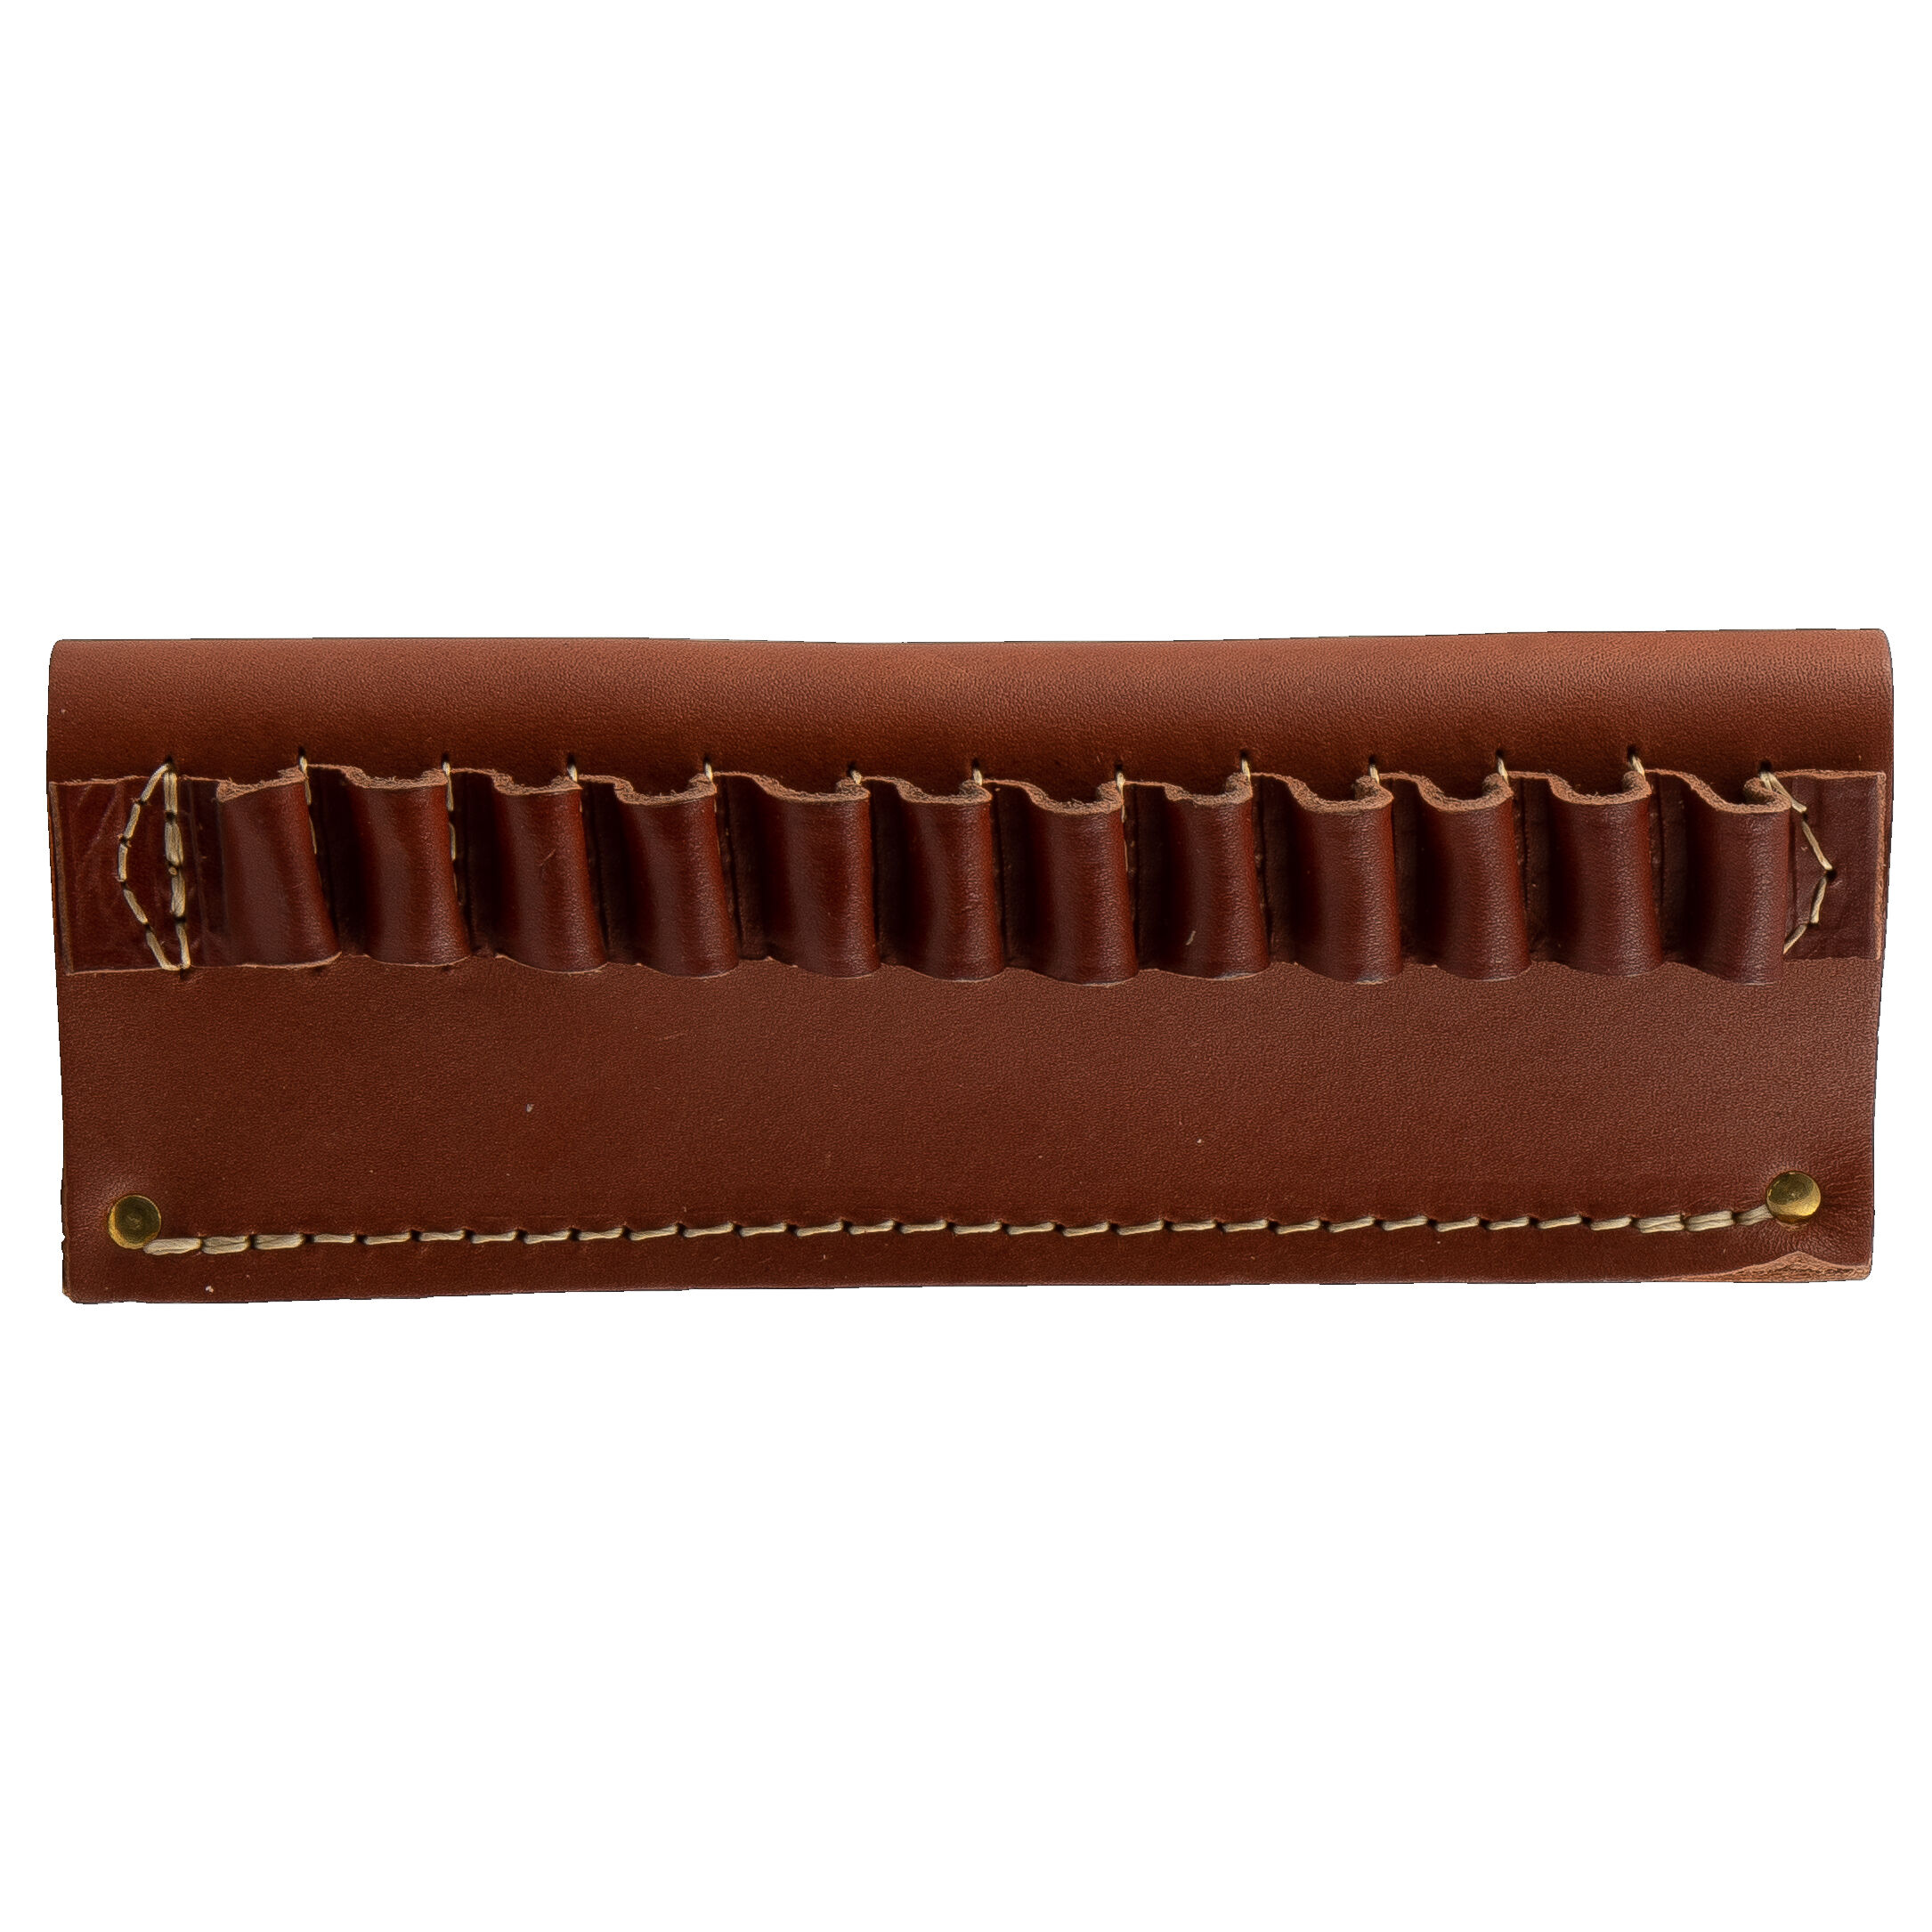 / 380 ACP. / 357 MG 20 ROUNDS LEATHER SHELL HOLDER FIT.38 SPL / 9 MM